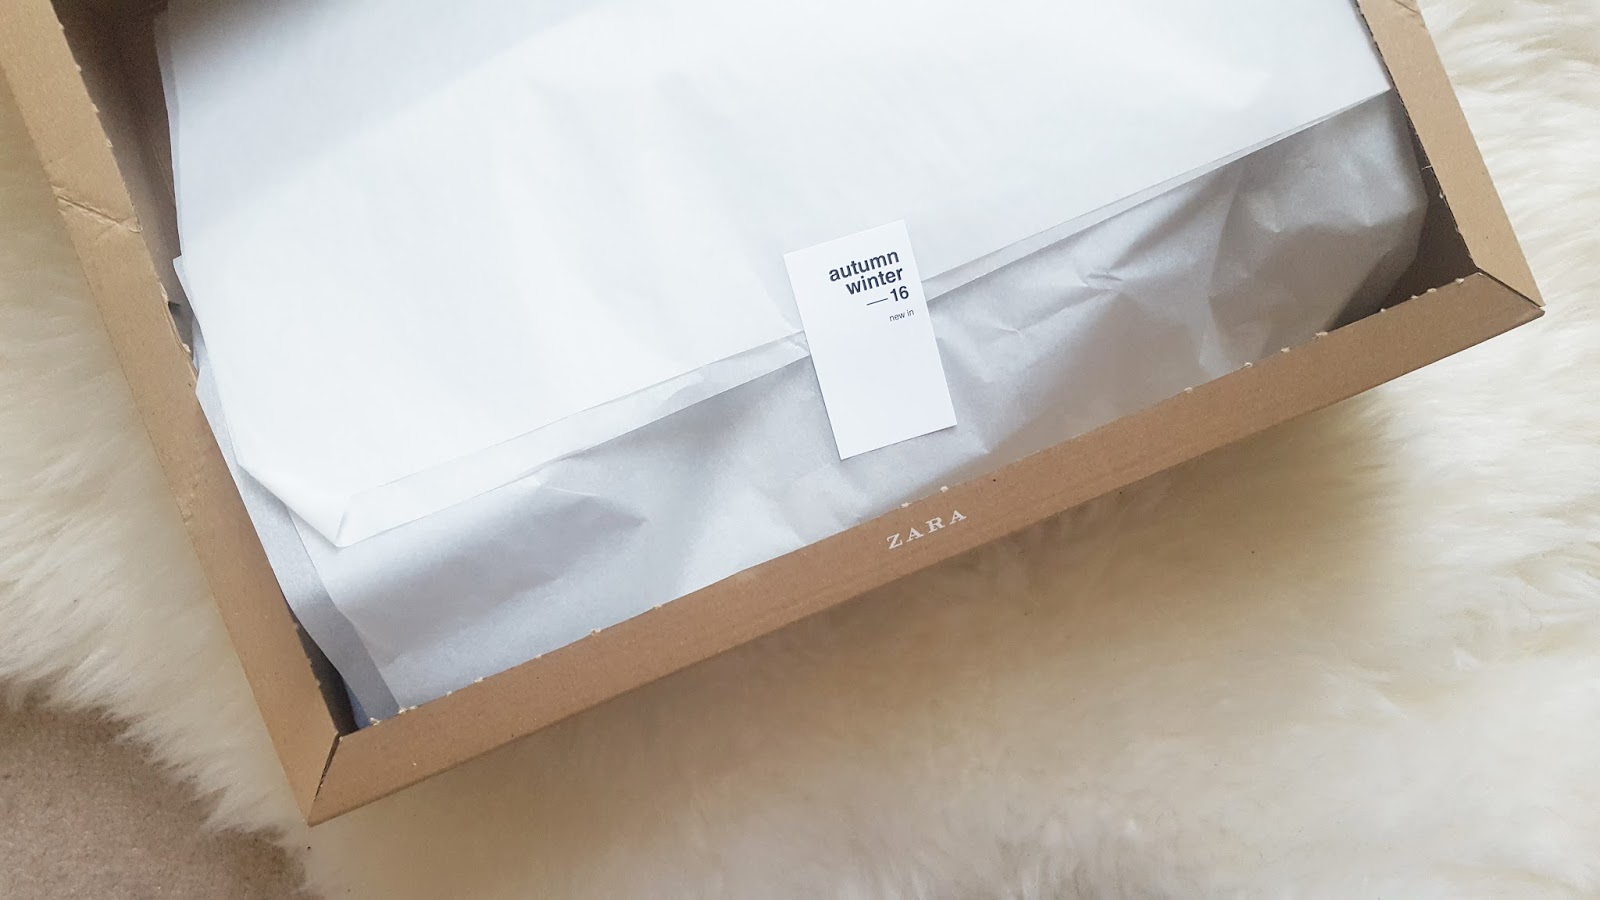 zara packaging